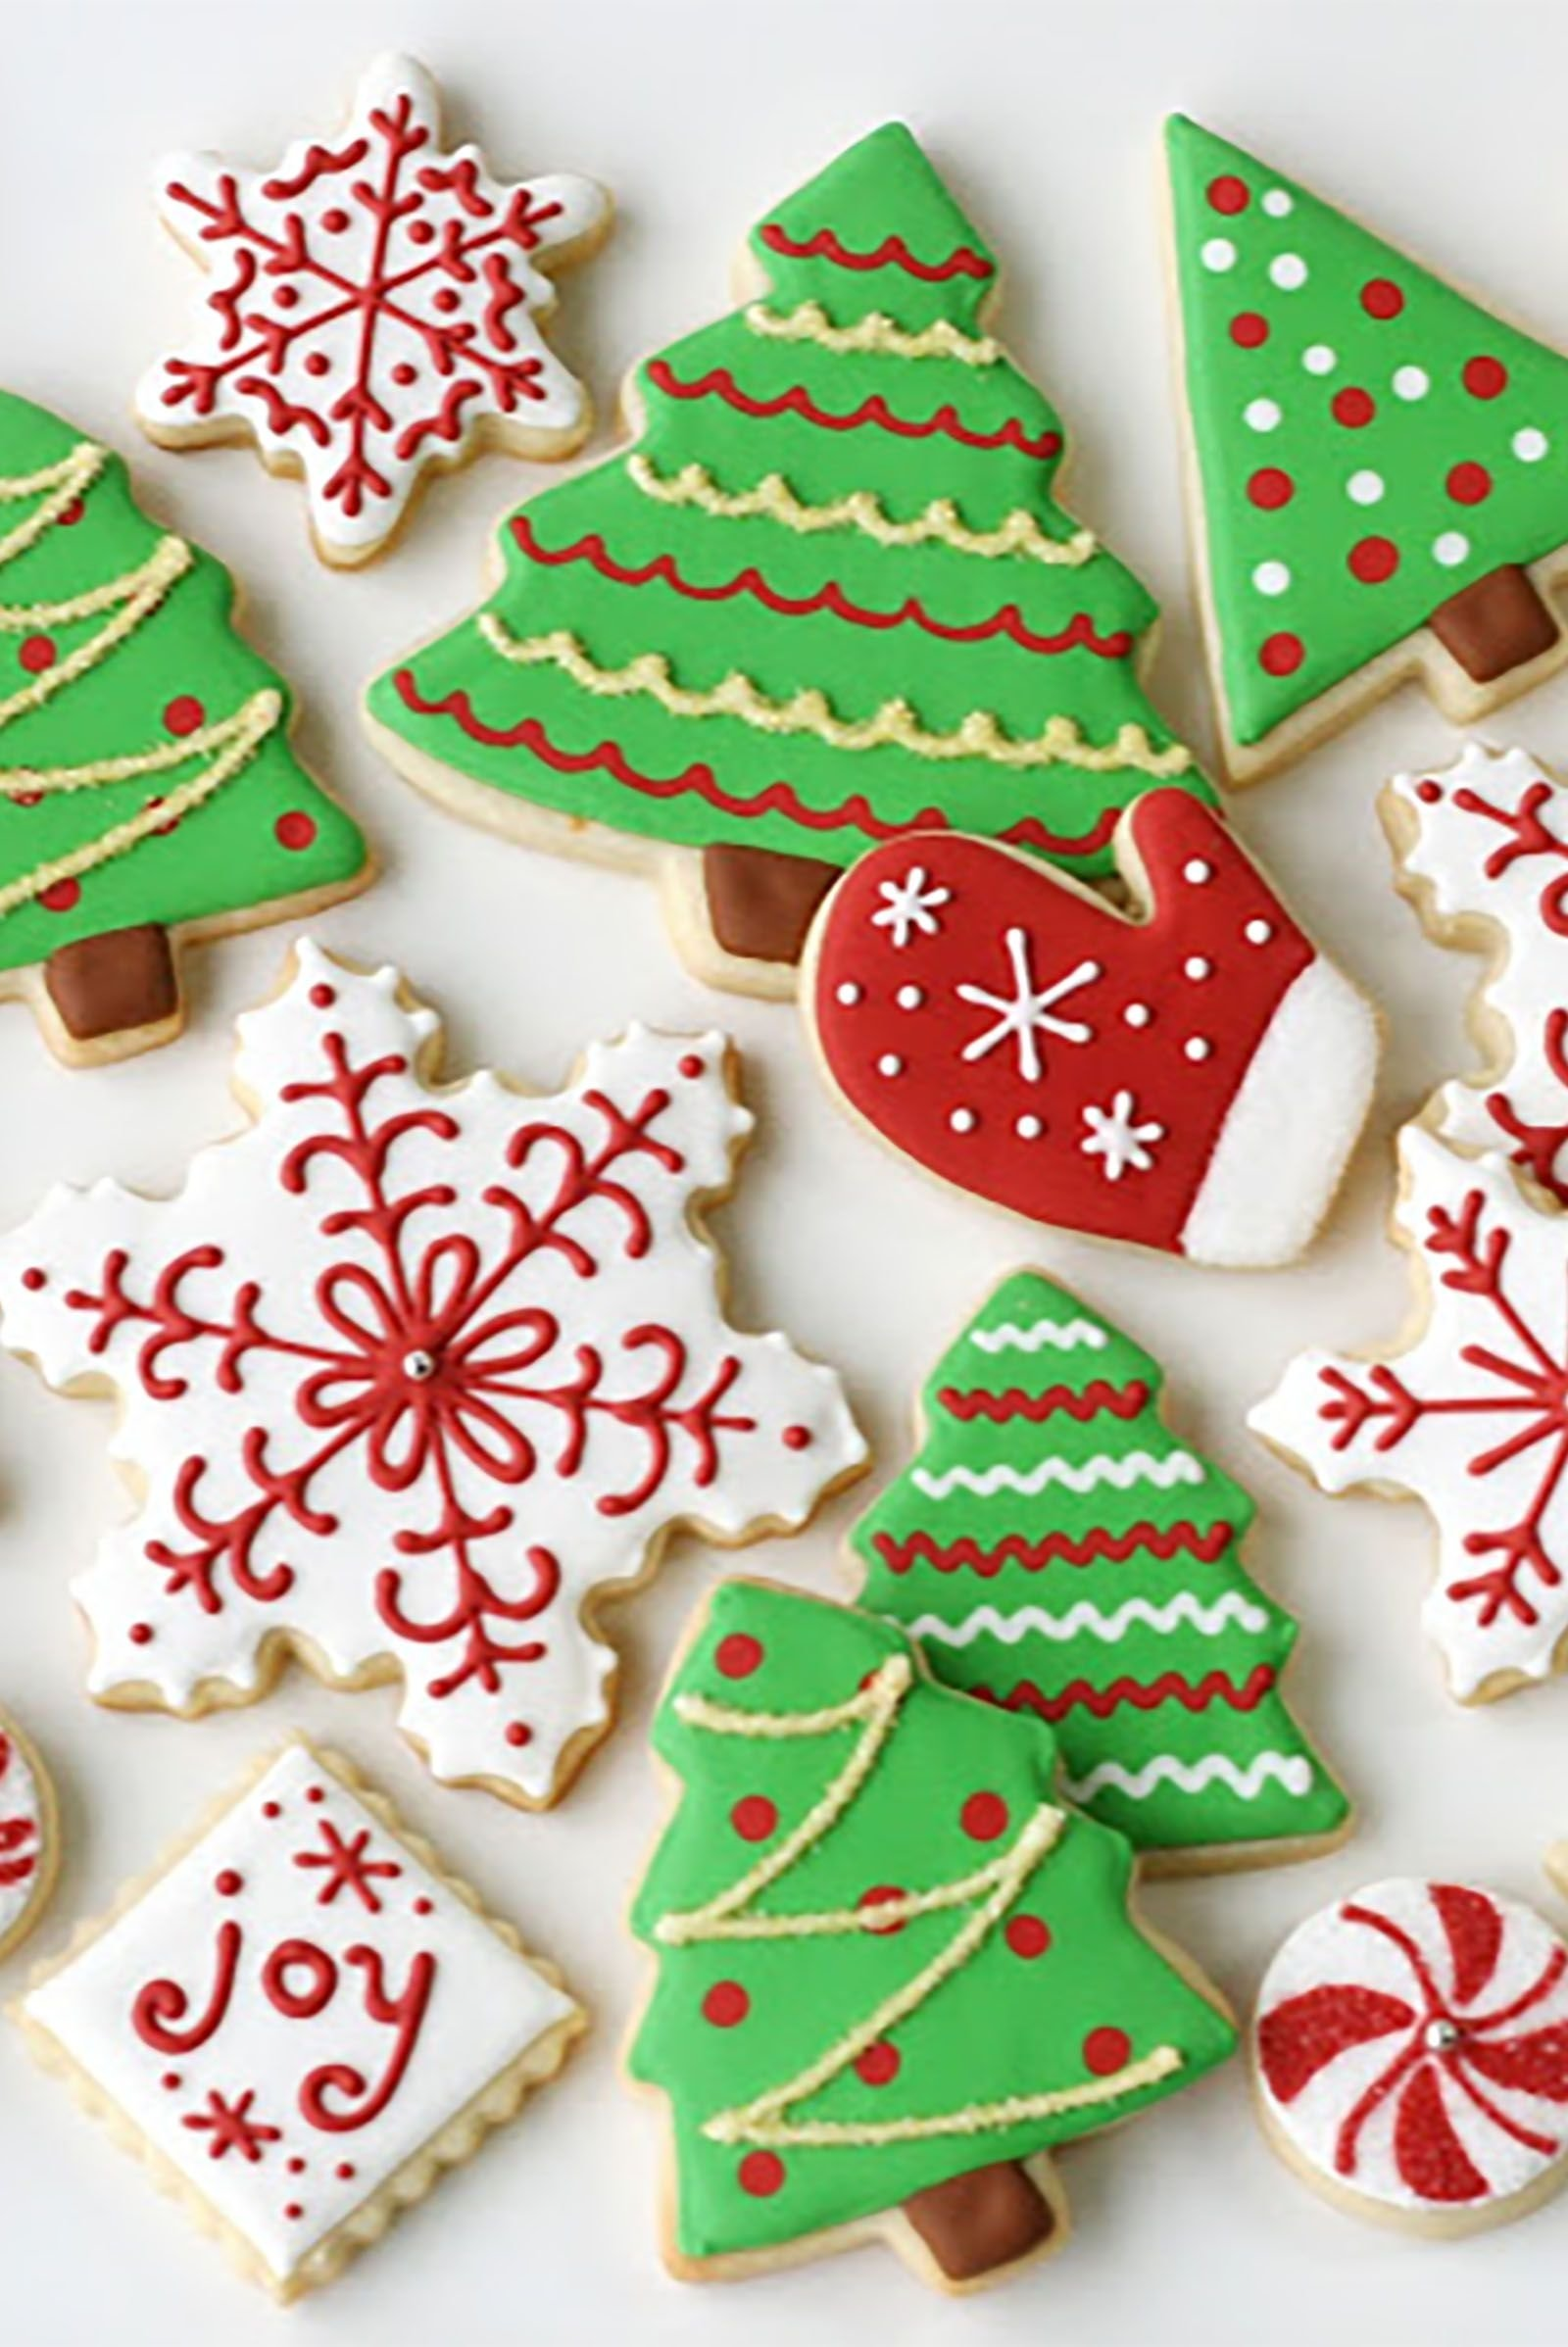 10 Ideal Christmas Sugar Cookie Decorating Ideas 25 easy christmas sugar cookies recipes decorating ideas for 2020